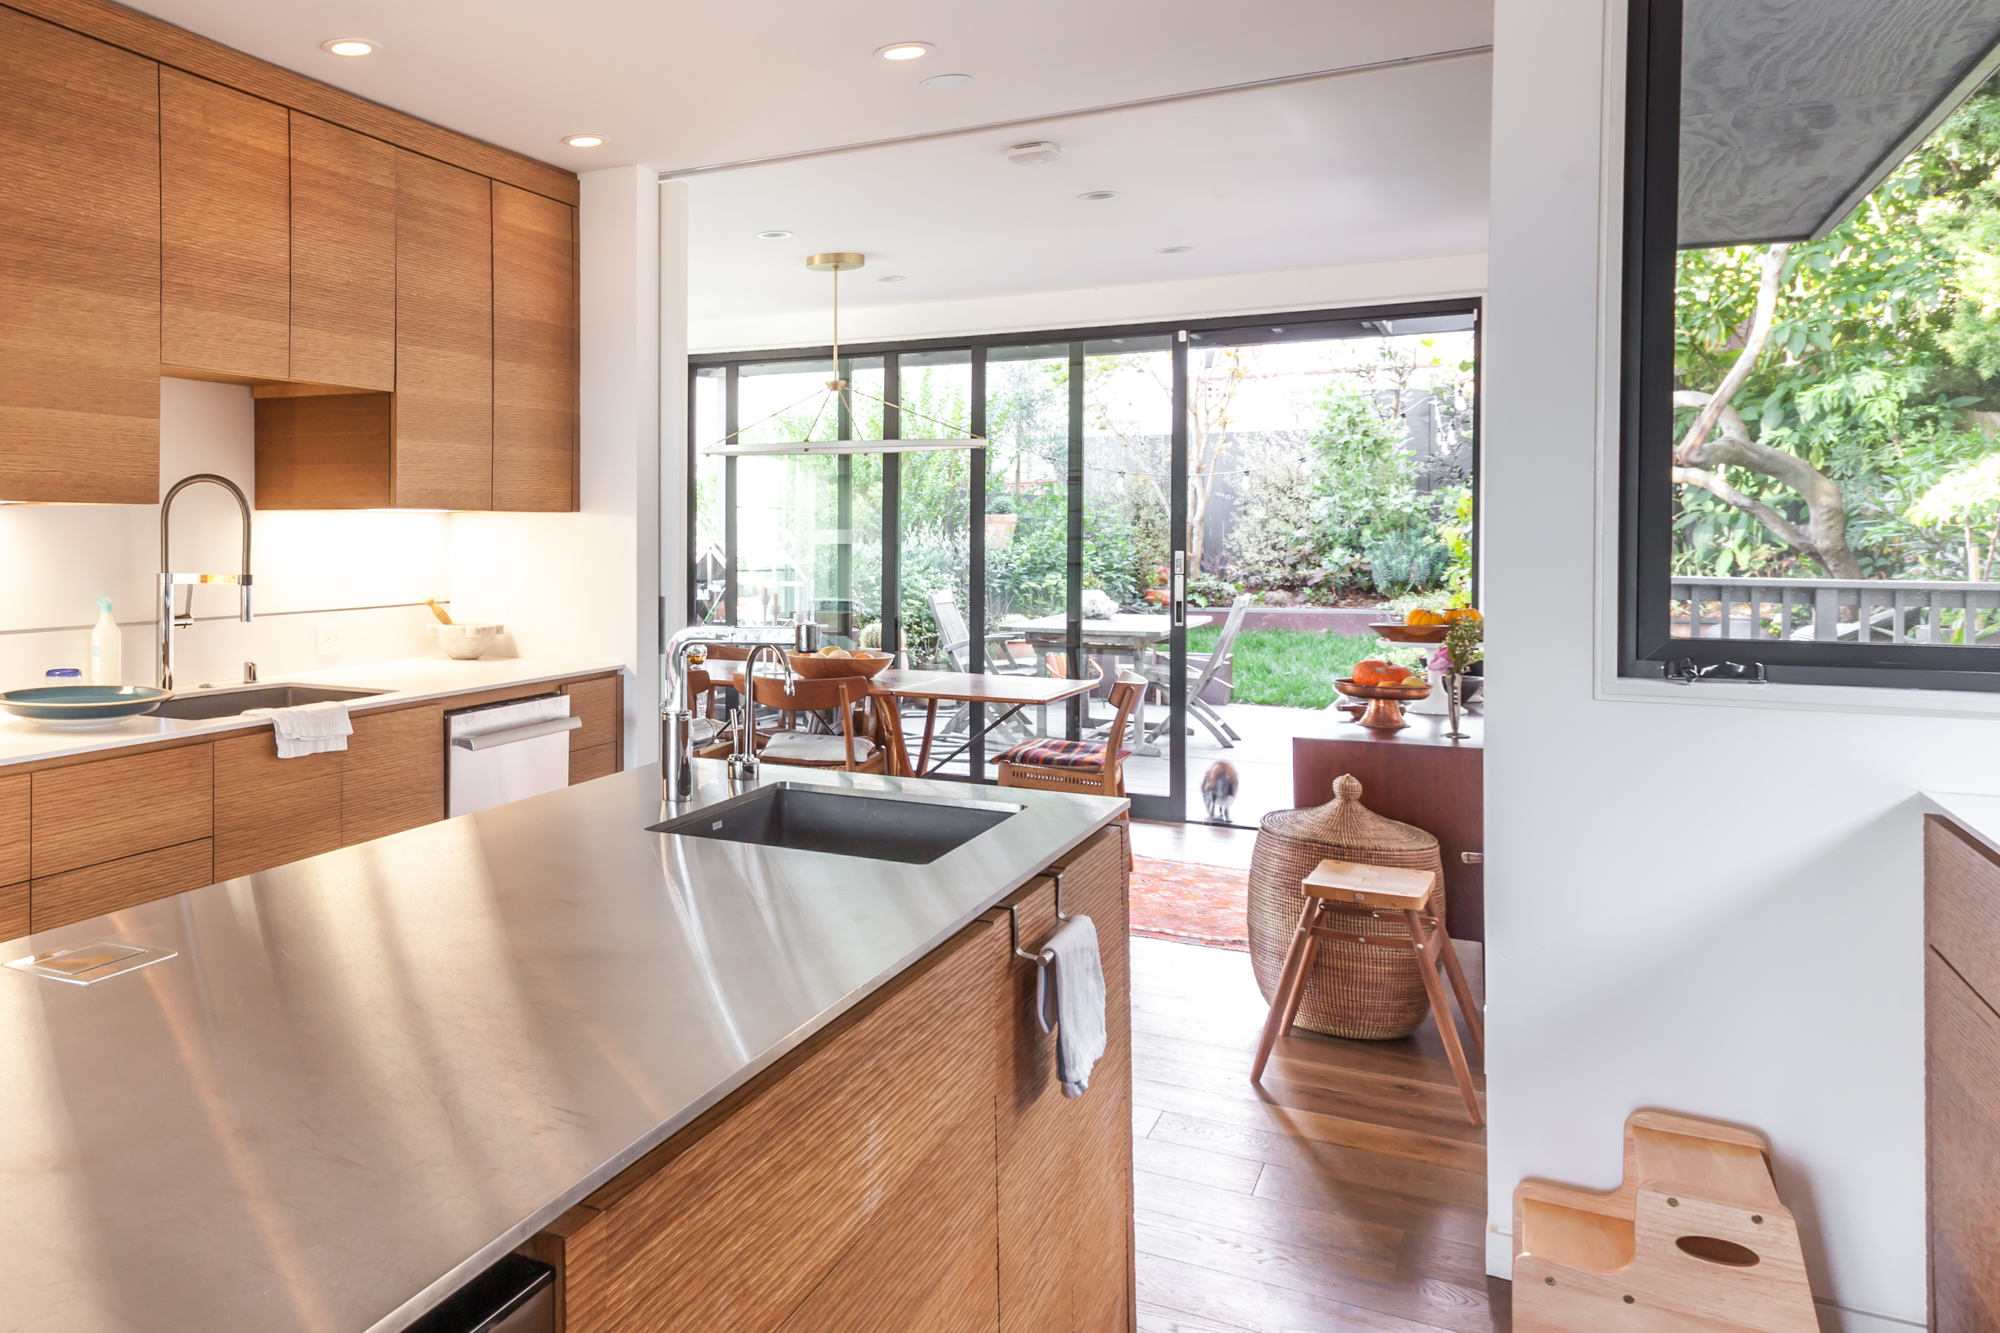 The Kitchen Leads Into The Dining Room And Backyard Garden.